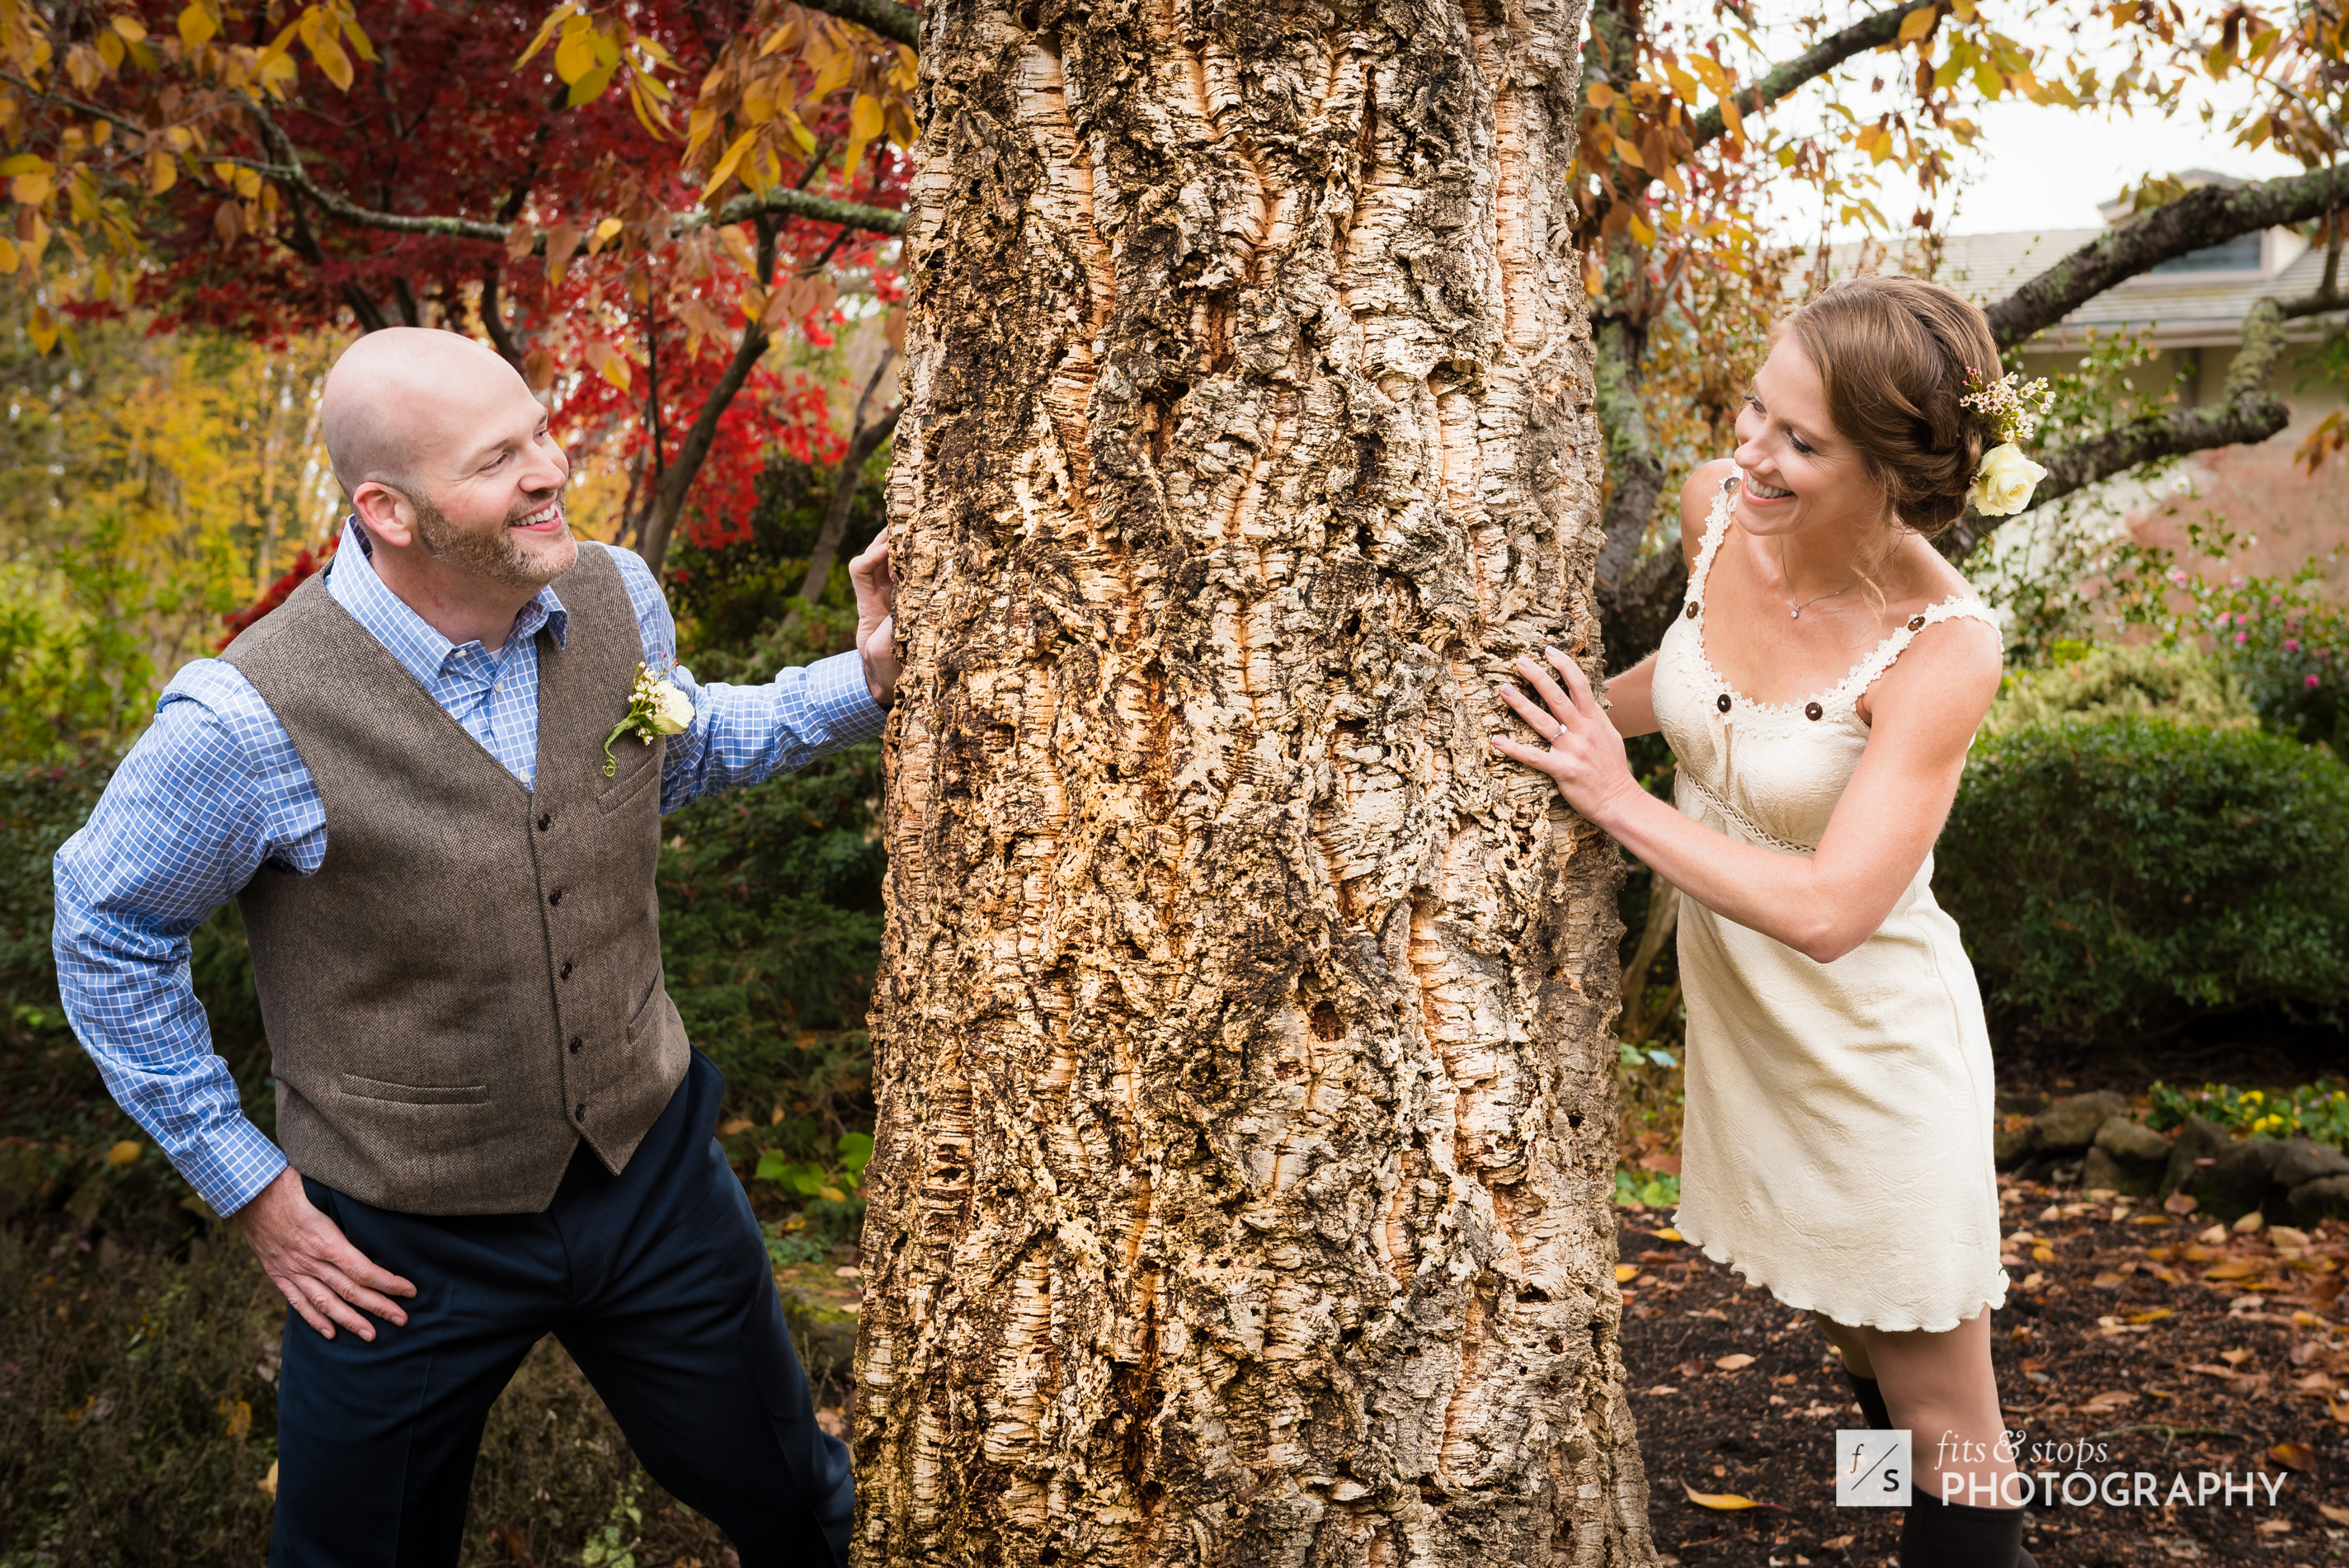 A newly married couple plays a game of hide and seek around a towering tree in a lush garden.